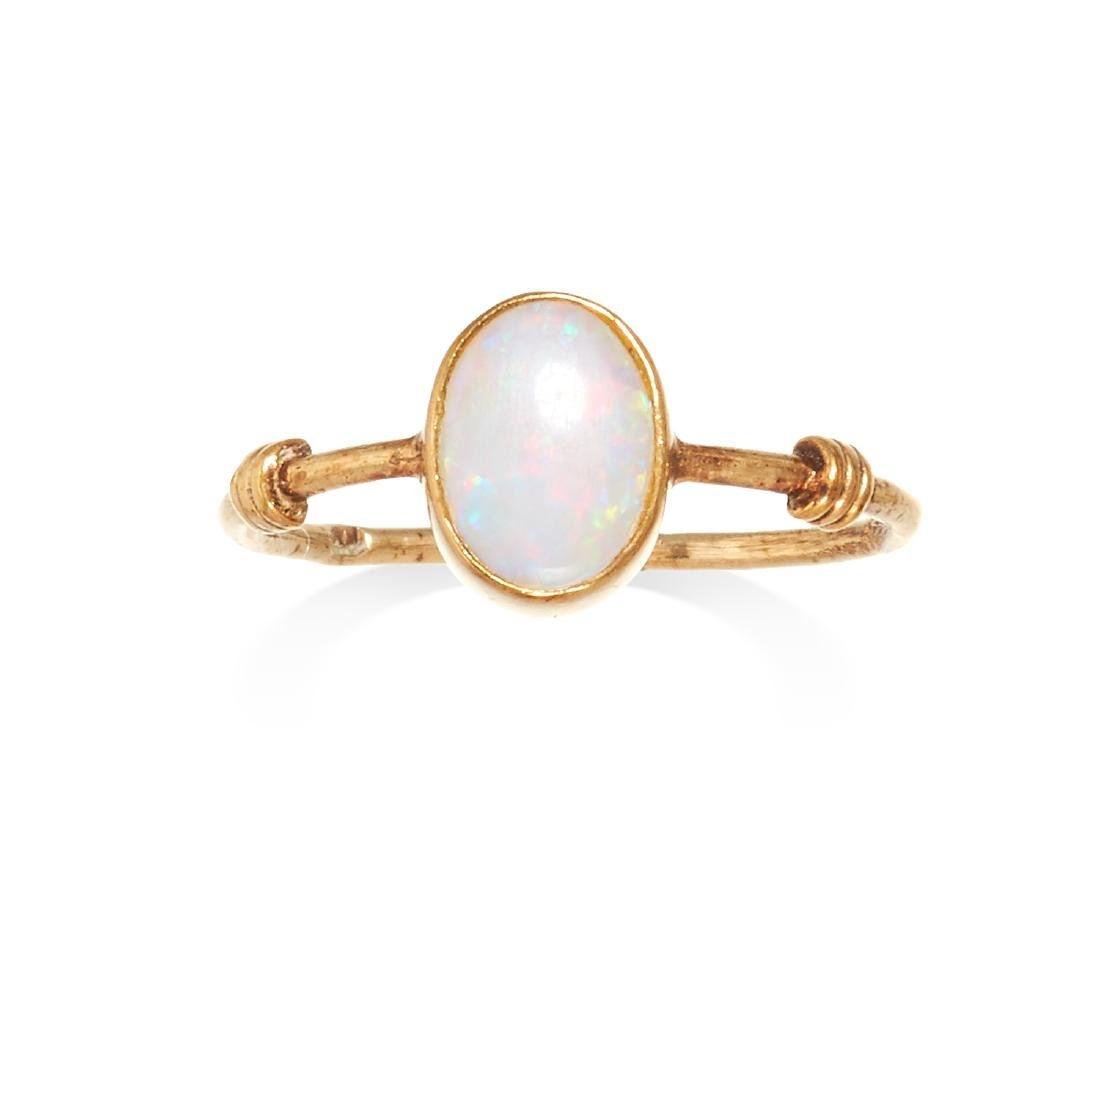 AN OPAL DRESS RING in yellow gold, the oval cabochon